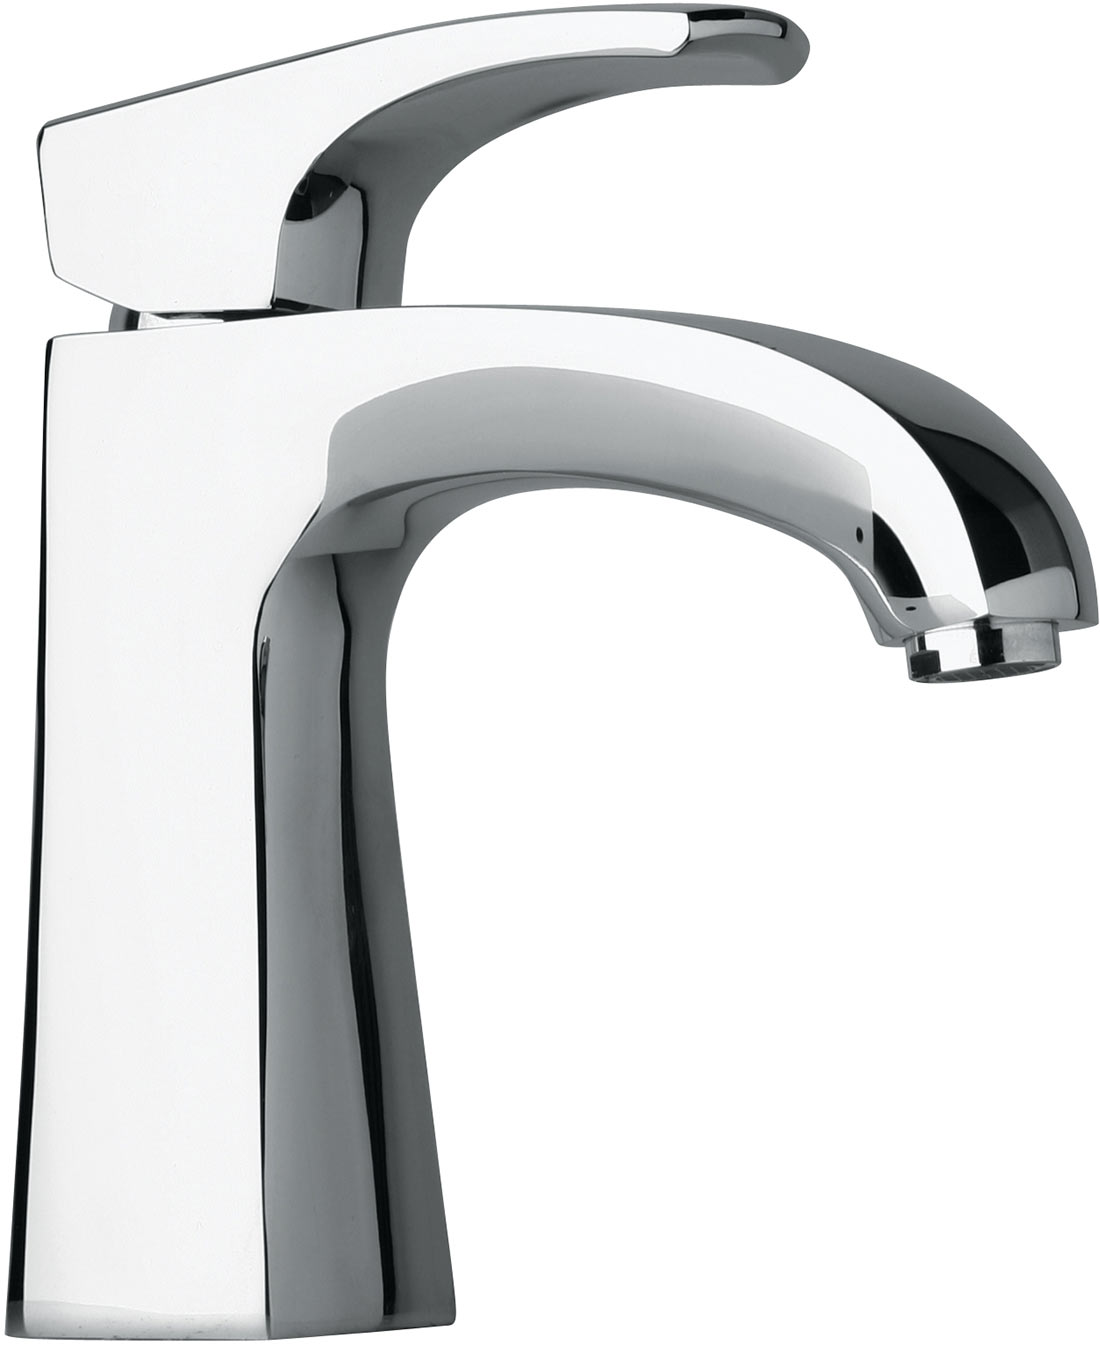 Buy LaToscana Lady Faucets at FaucetLine.com